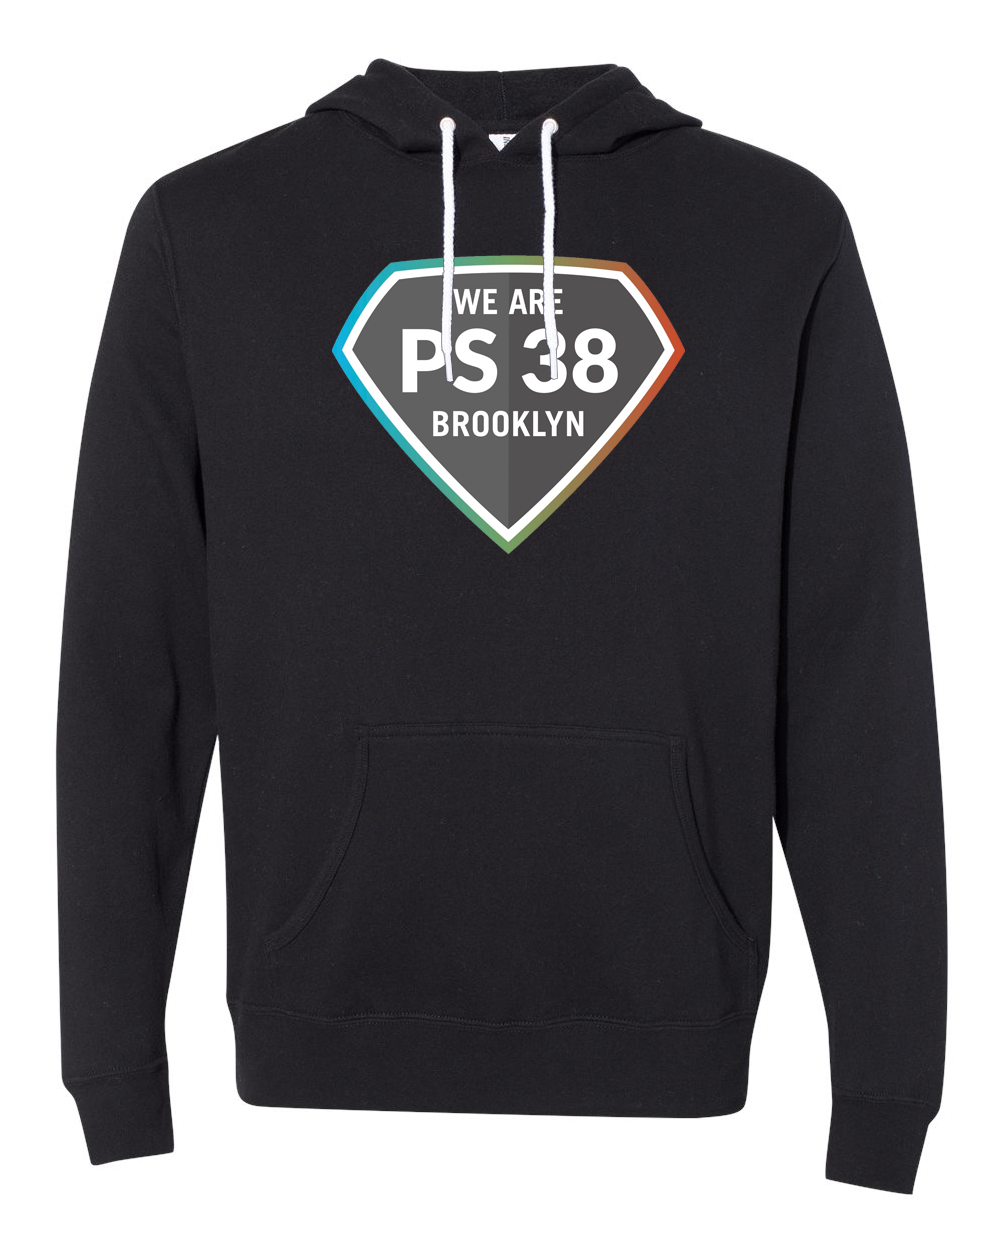 P.S. 38 : Adult Pullover Hoodie